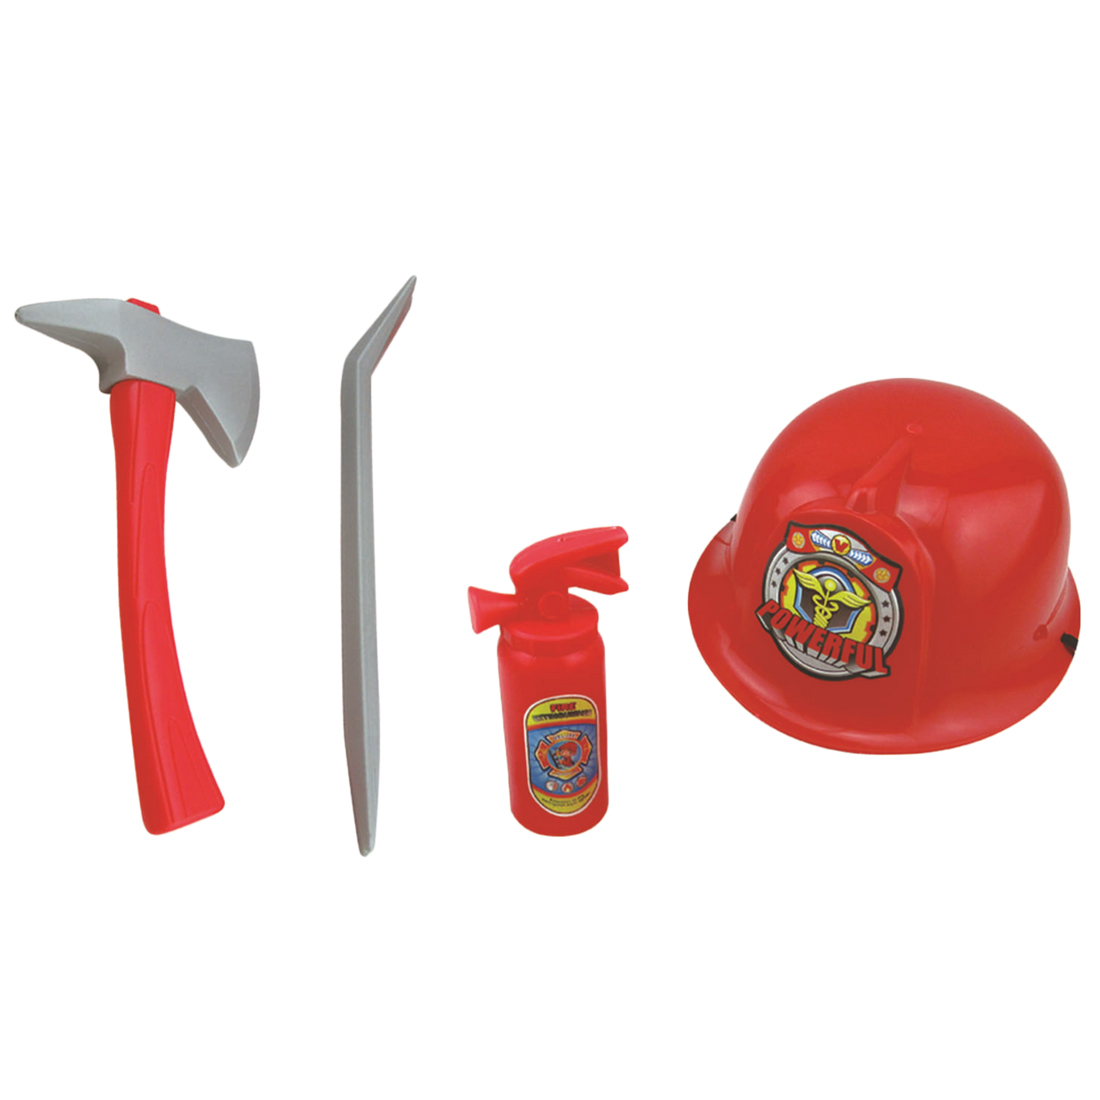 Fireman Costume Firefighter Role Play Boys Toy Hat Axe Crowbar Fire